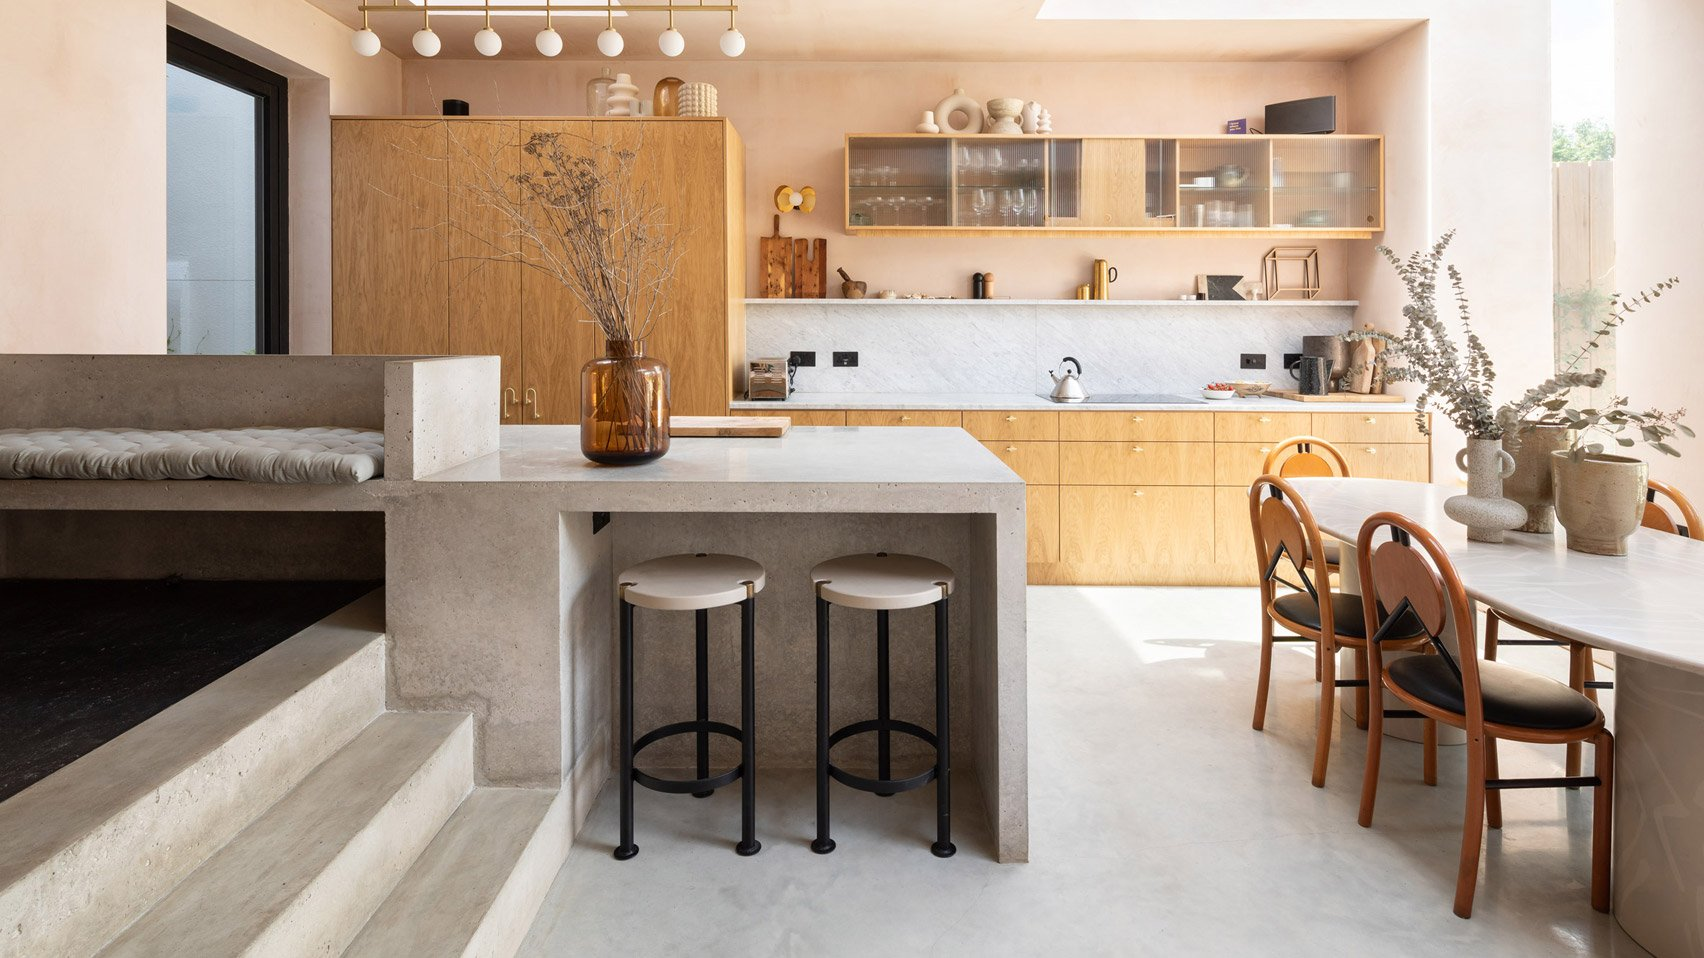 The Dezeen guide to kitchen layouts